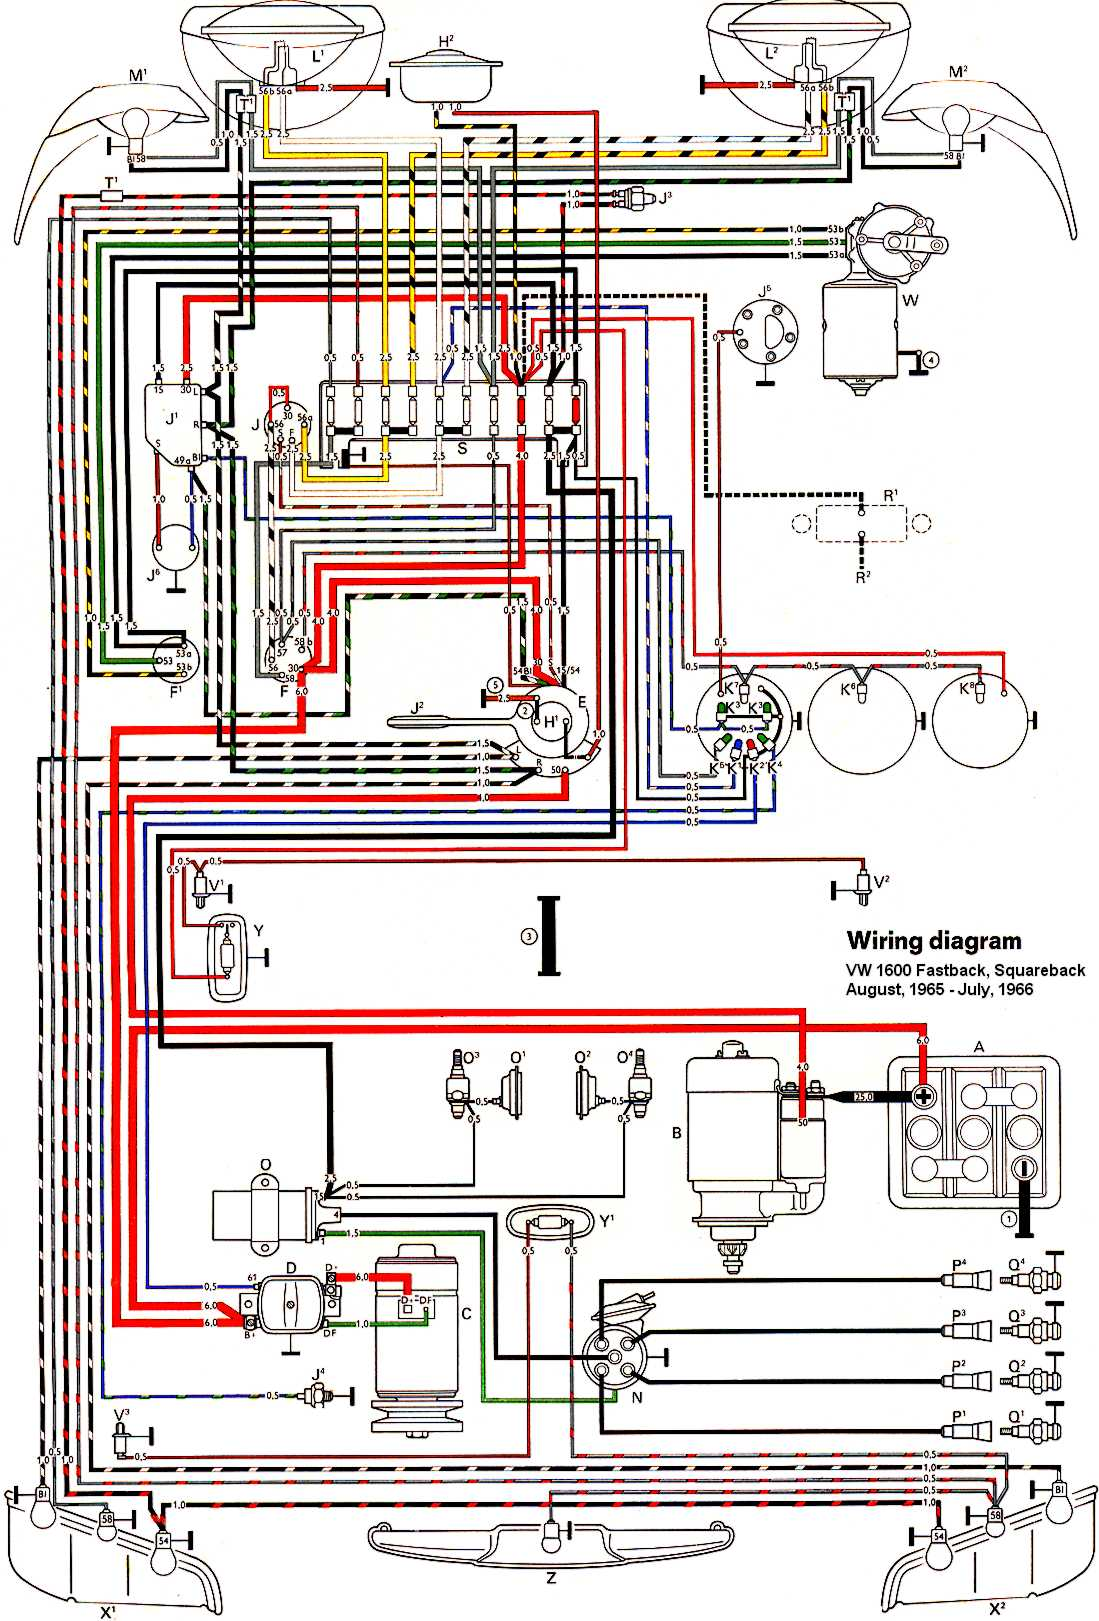 68 Vw Beetle Flasher Wiring Diagram FULL Version HD Quality Wiring Diagram  - TYBO.AS4A.FRAS4A.FR